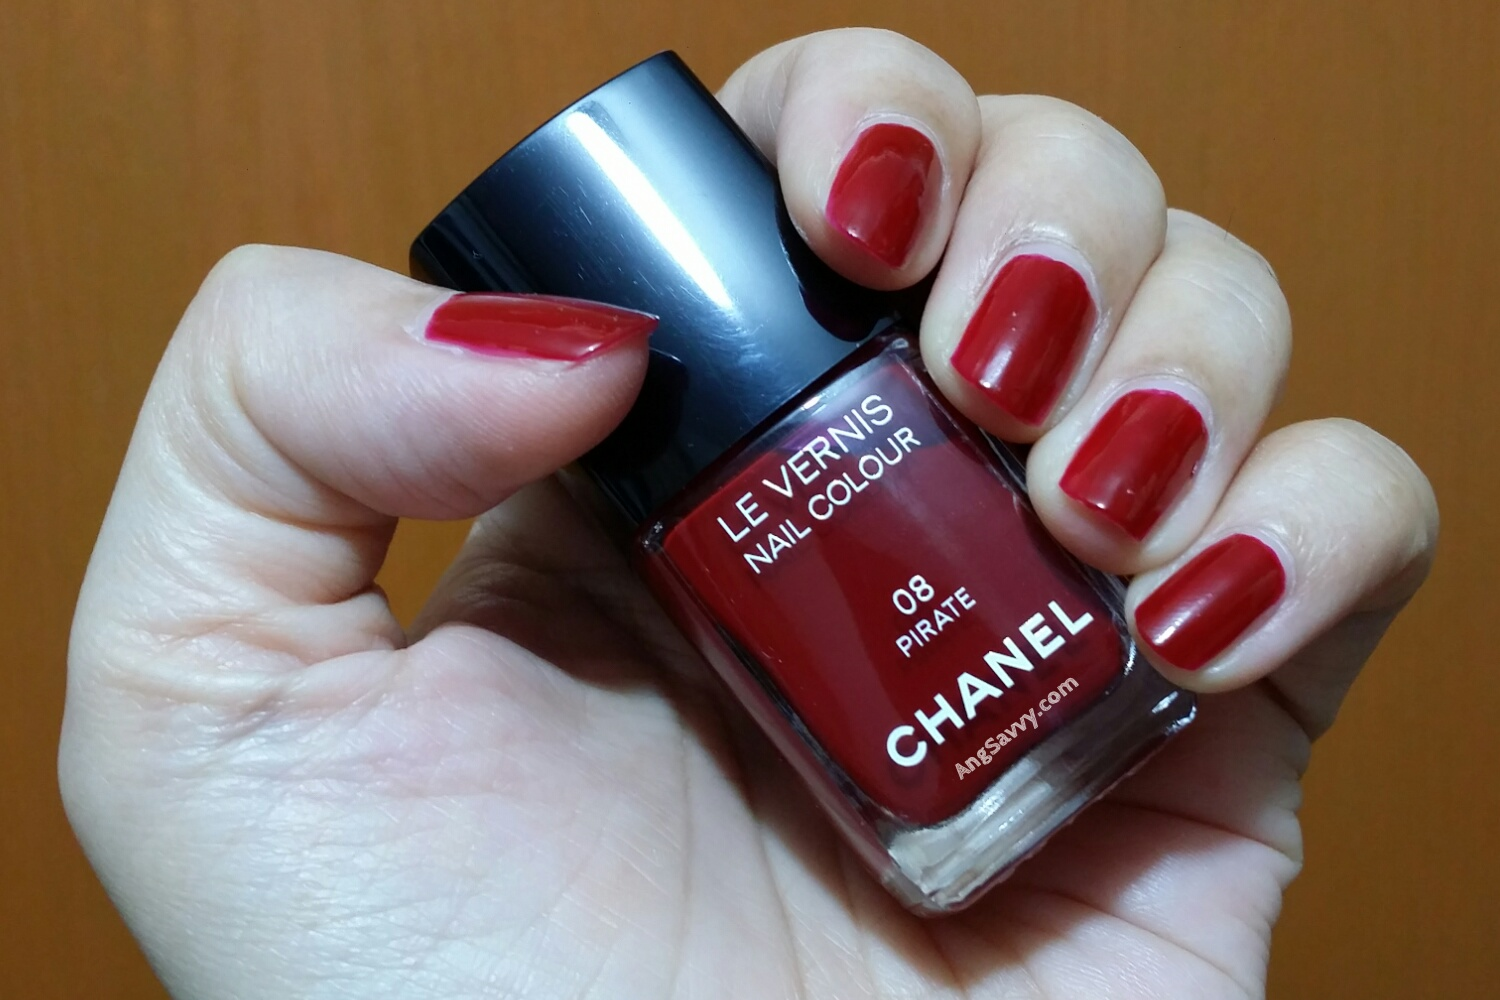 Chanel Pirate Nail Polish Swatches